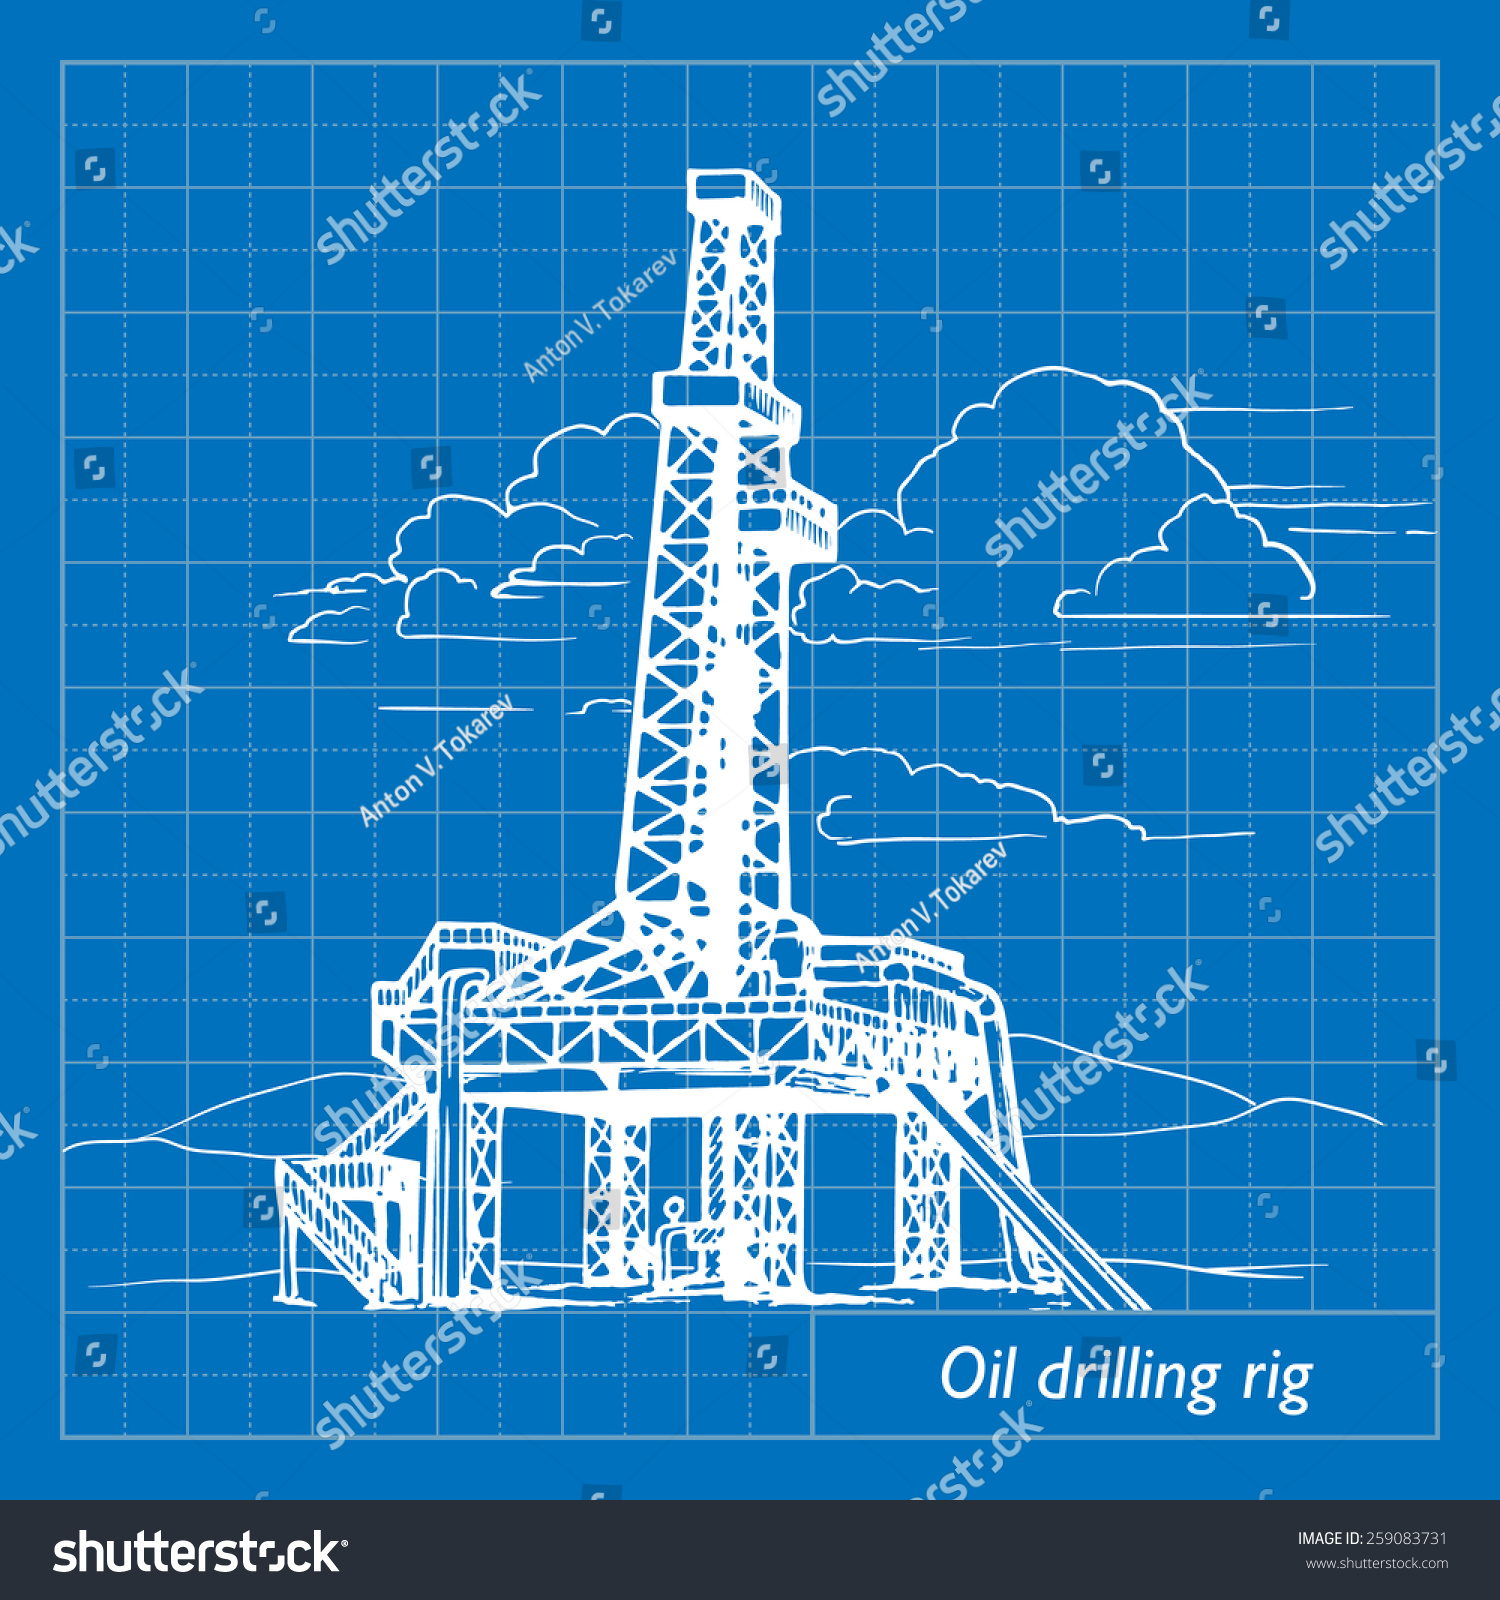 oil drill bit illustration. land oil drilling complex also called rig. eps10 vector illustration imitating blueprint style scribbling drill bit